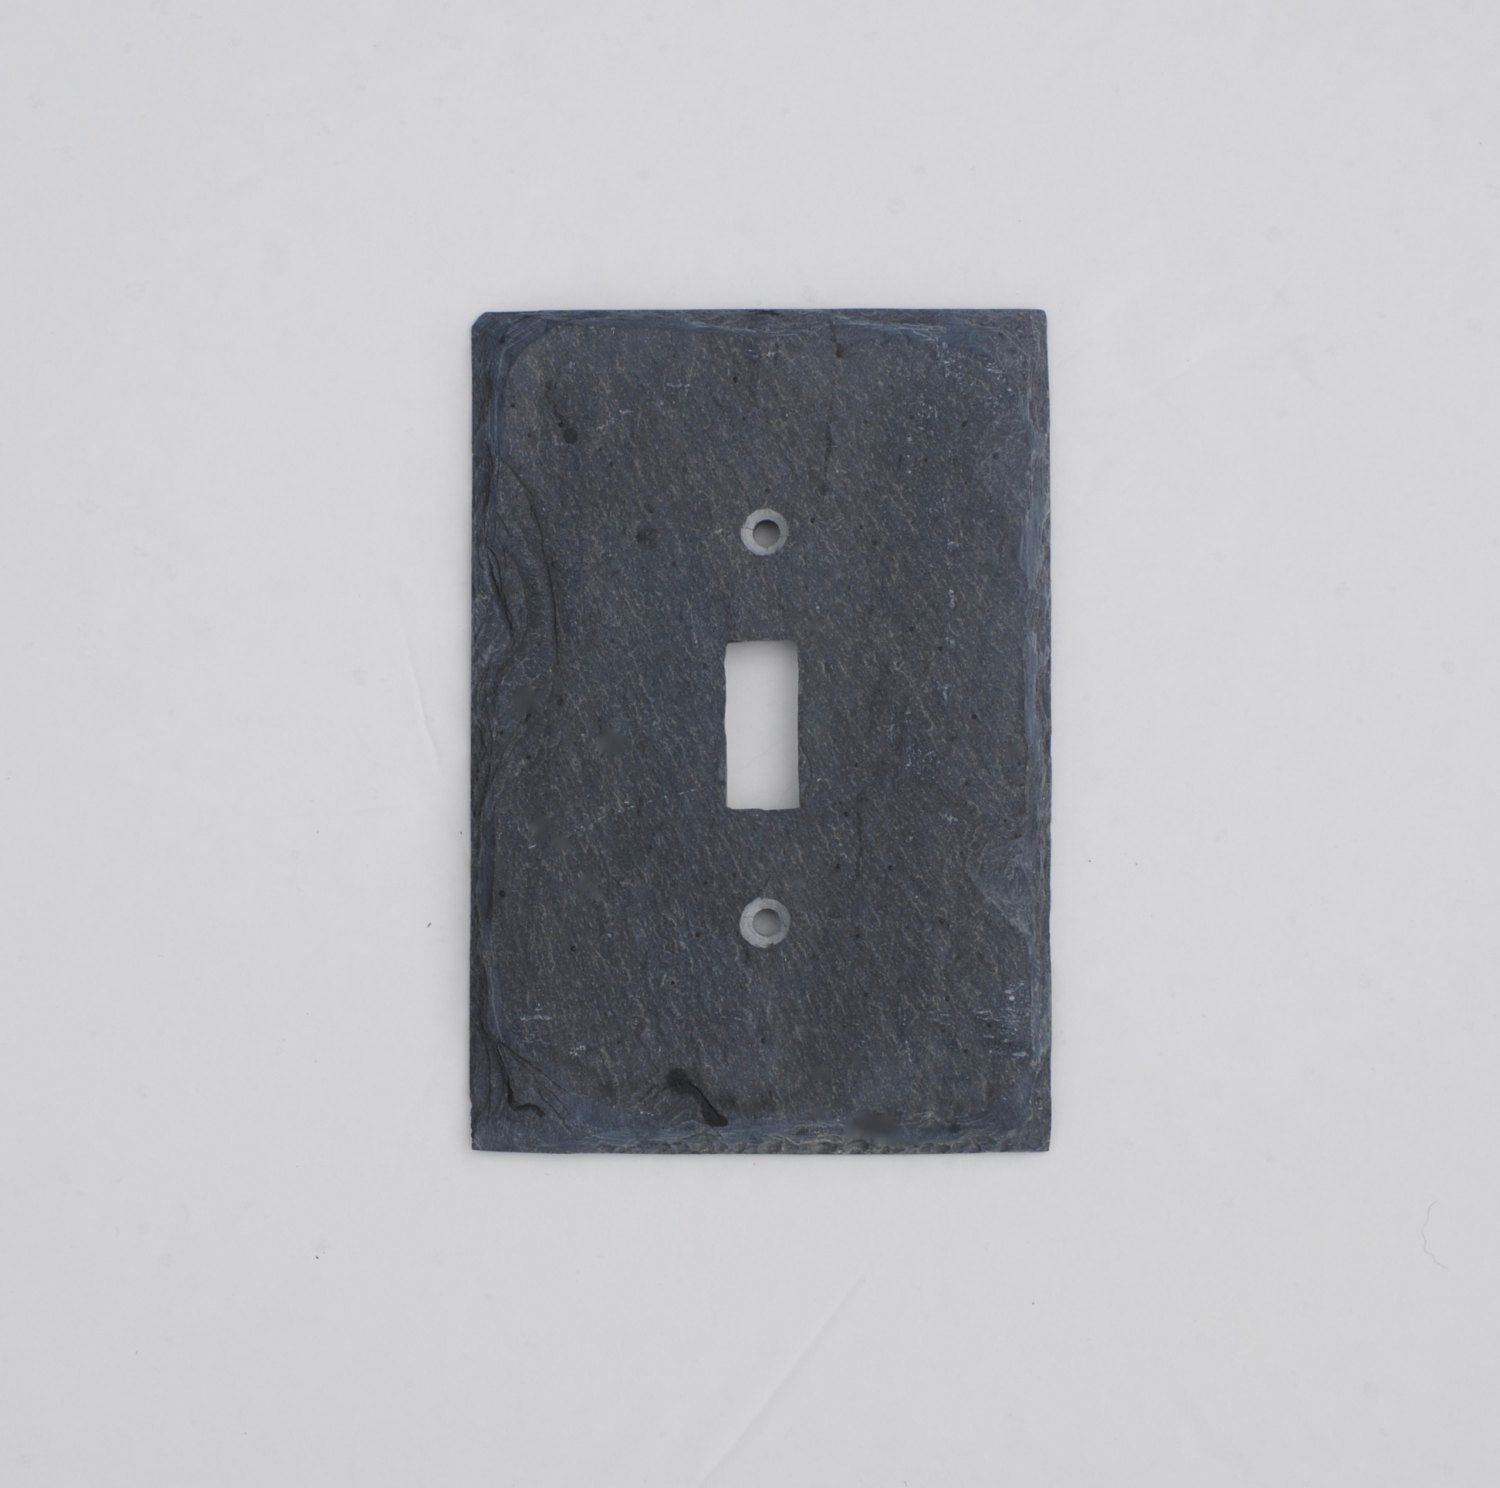 Rustic Light Switch Covers Decorative Light Switch Cover Switch Plate Wall Plate Rustic